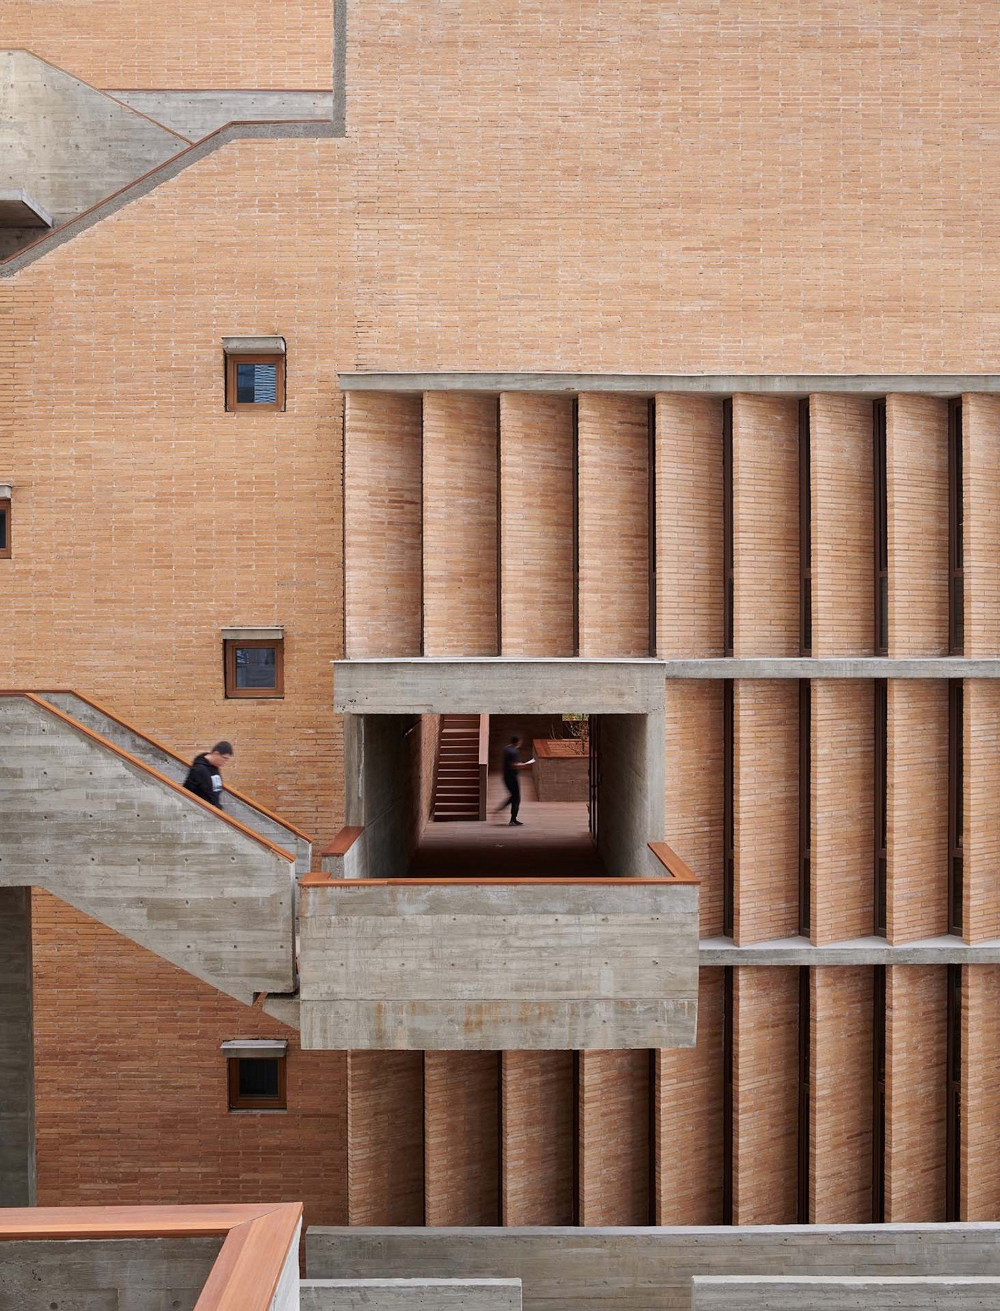 Vector Architects' Monumental Pale-Brick Building Opens As The Changjiang Art Museum - IGNANT